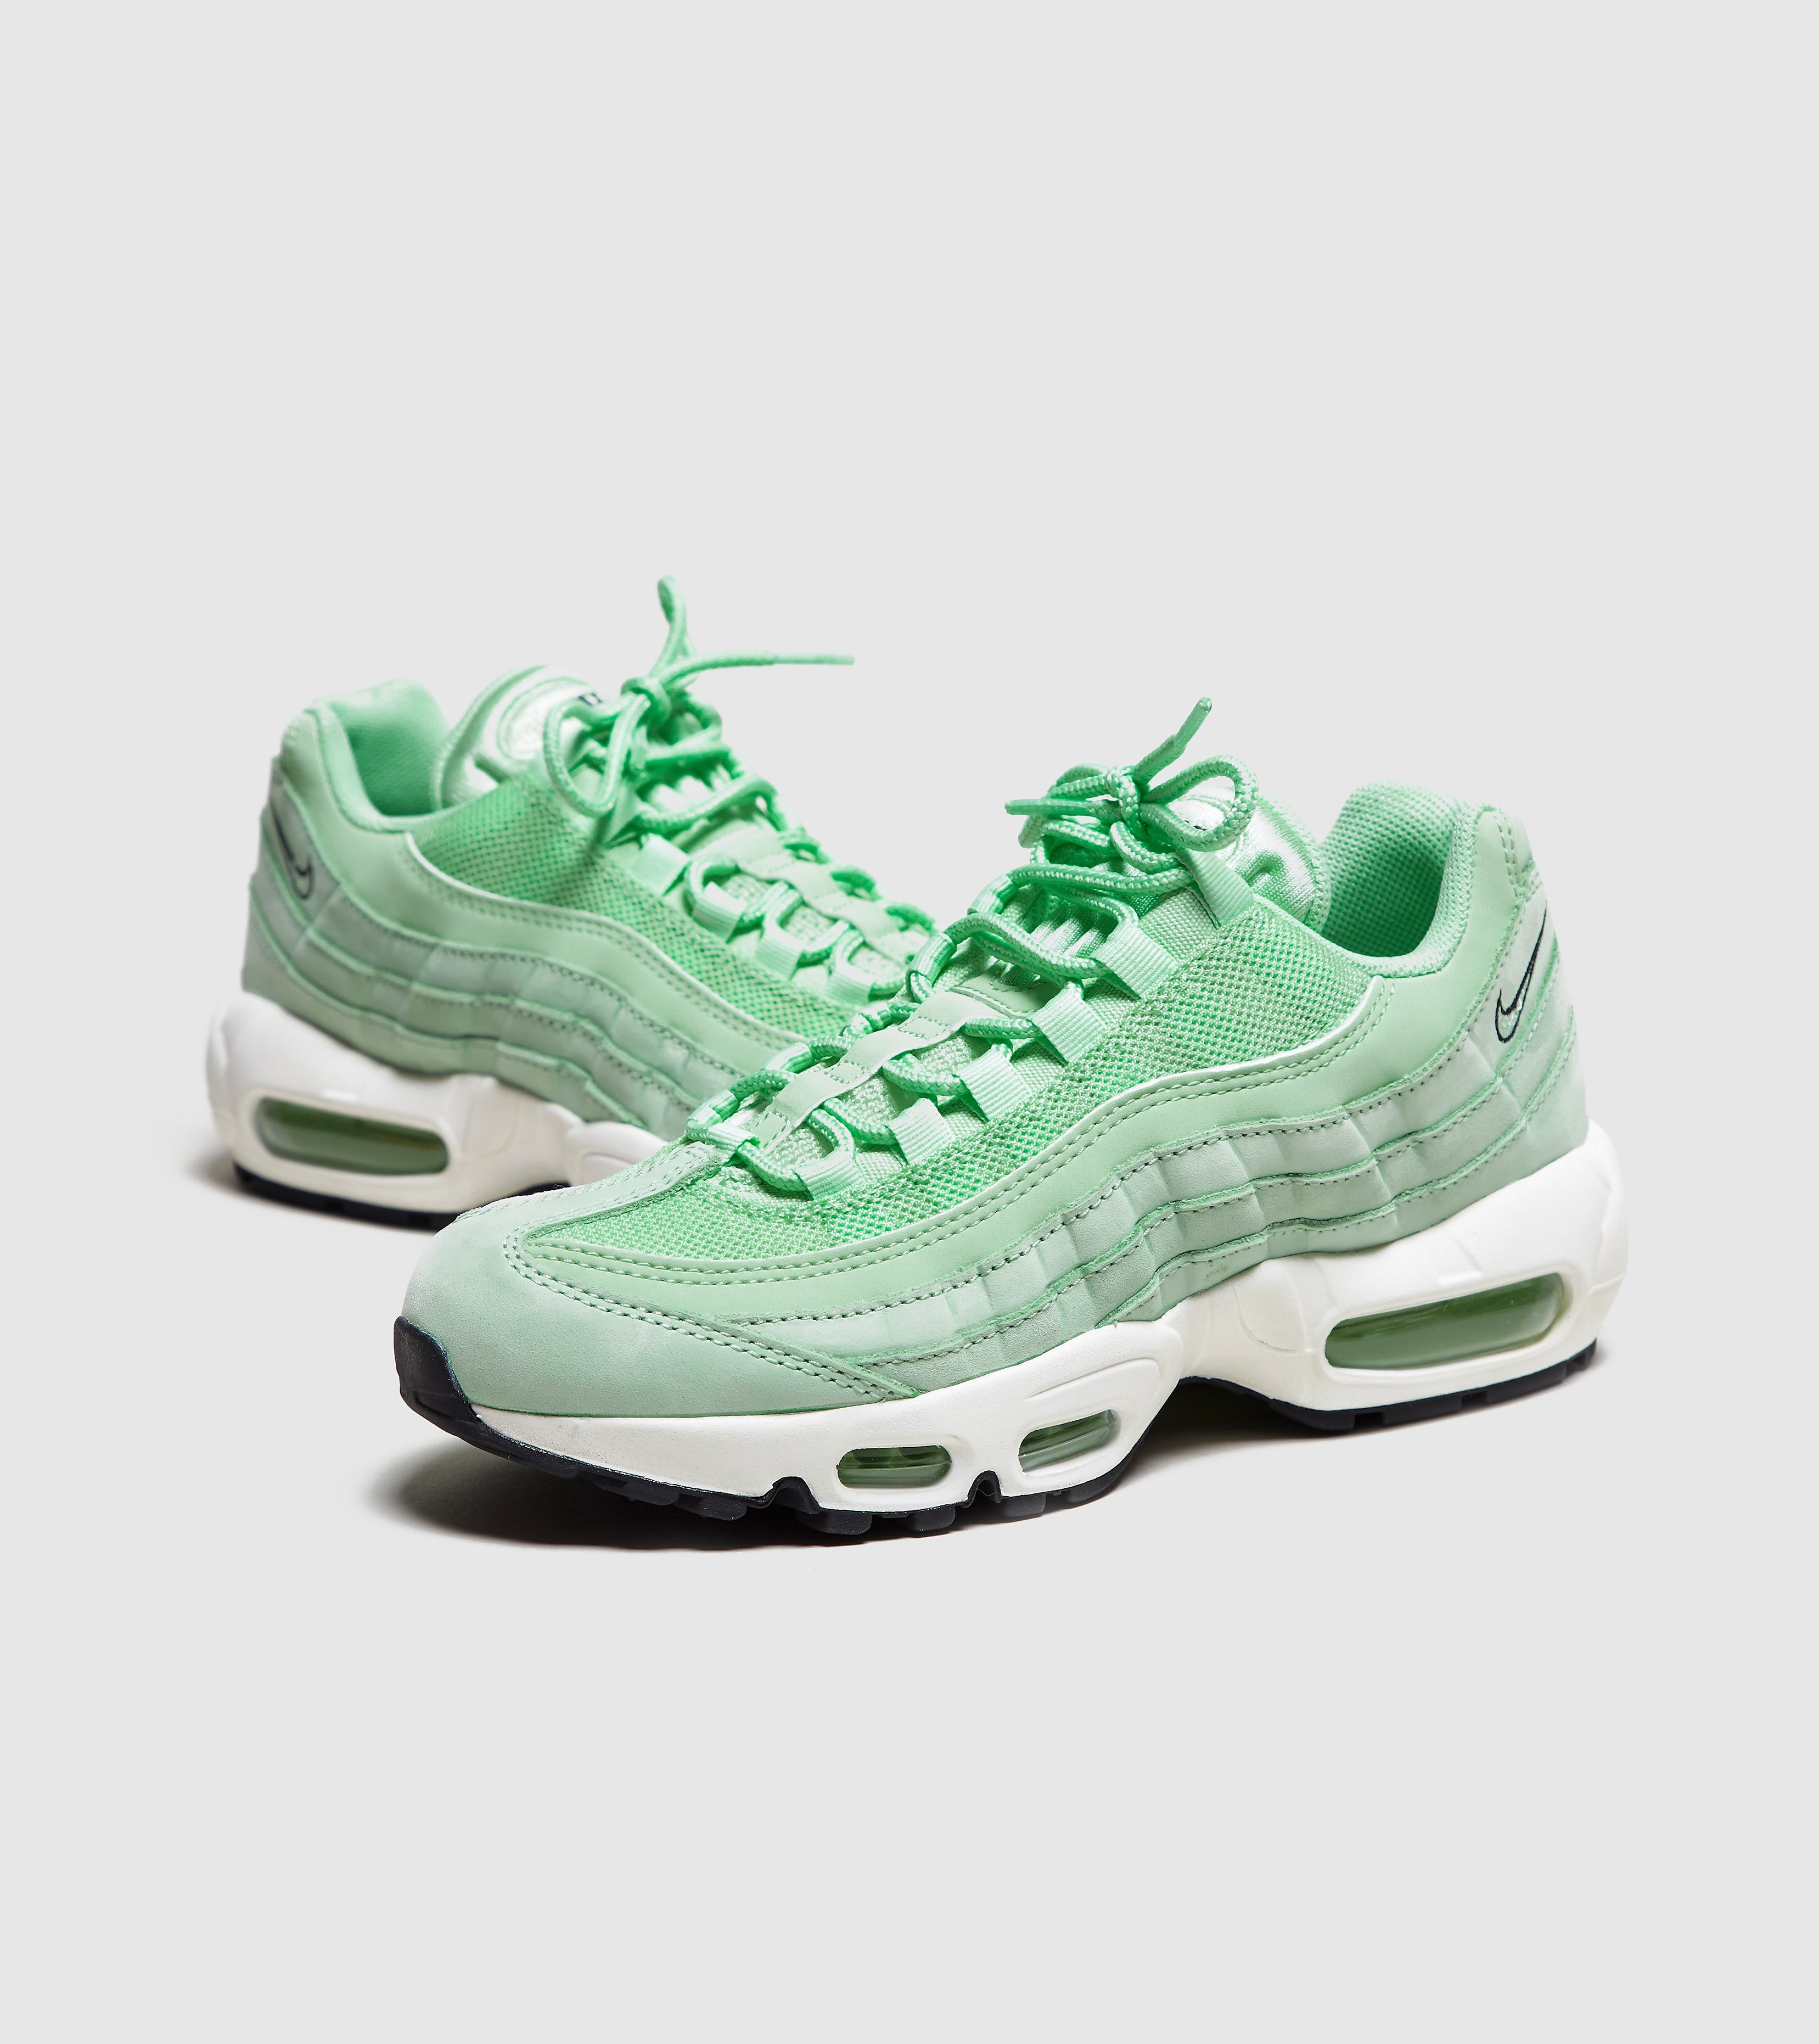 Nike Air Max 95 Premium Frauen